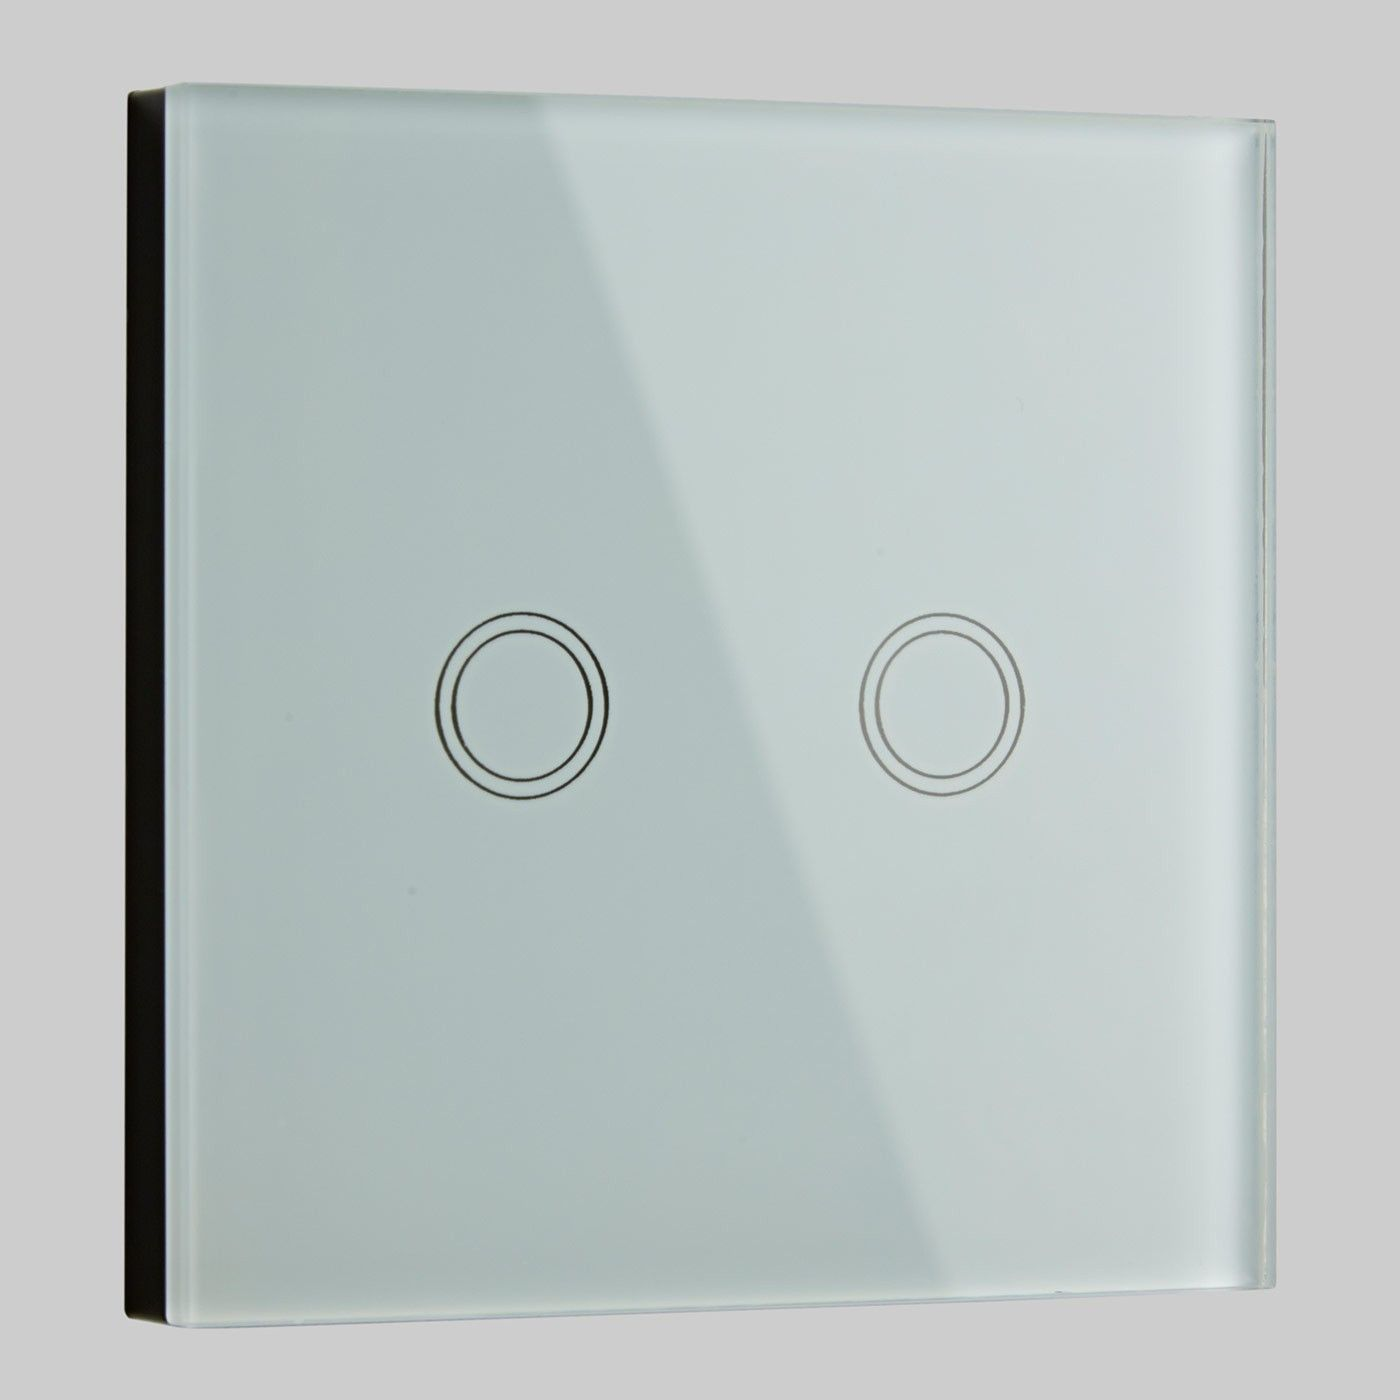 Biard 2 Gang White Glass Designer Touch Light Switch Touch Light